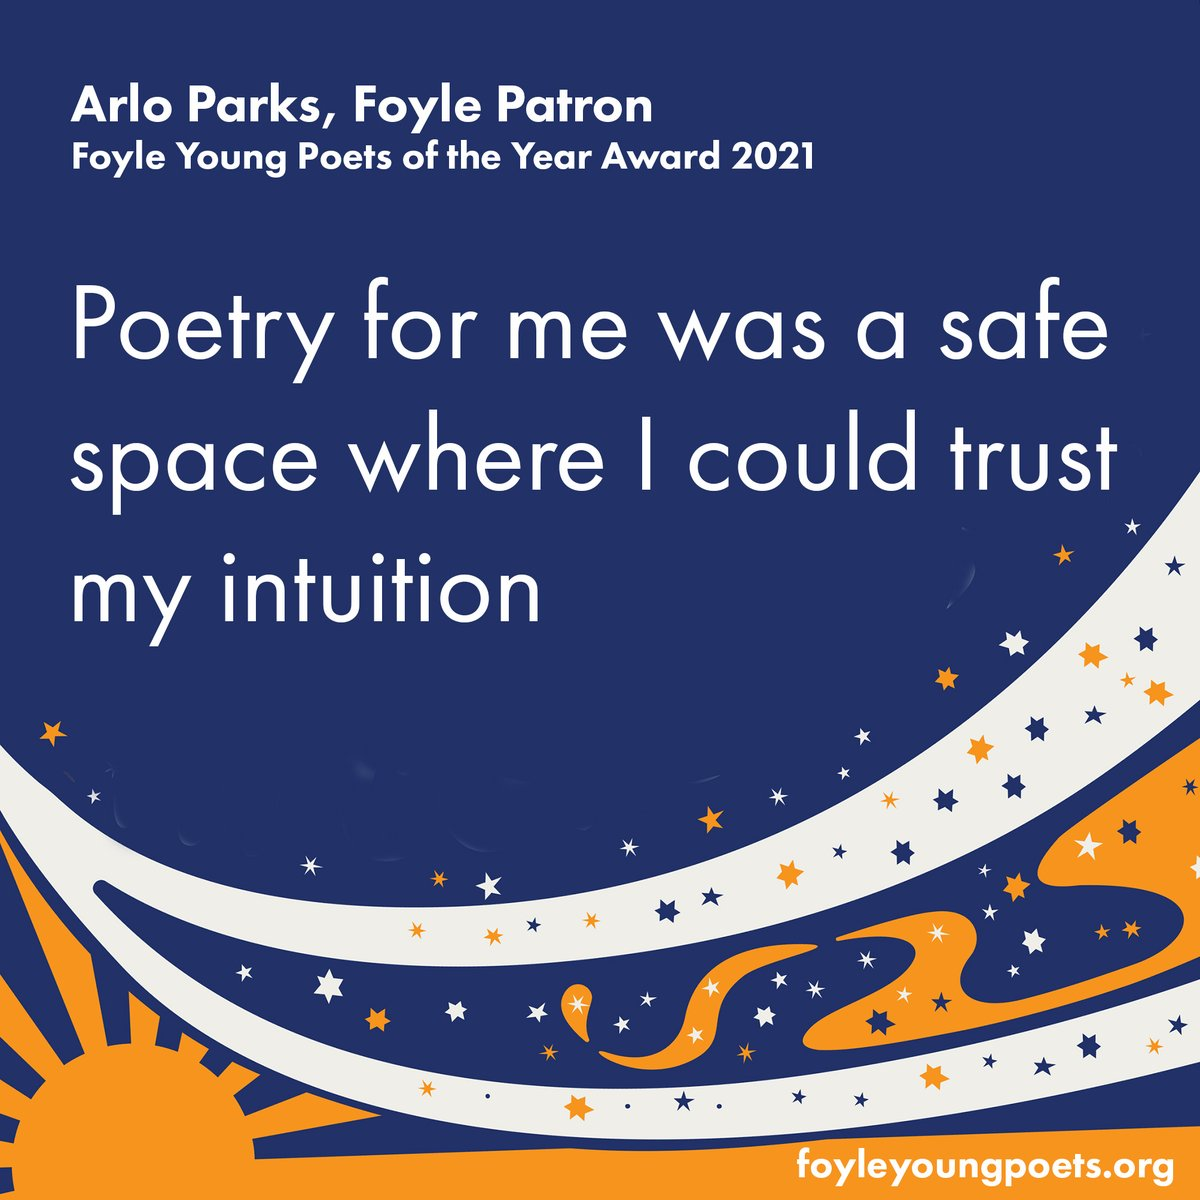 test Twitter Media - Today is #NationalWritingDay ! What does writing poetry mean to you?  For #FoyleYoungPoets Award patron @arloparks it means a safe space.  If you're aged 11-17, enter the competition by 31 July at https://t.co/BYvO8yO8T1. We'd love to read your work.  @writeday https://t.co/ZIKXe9XDDA